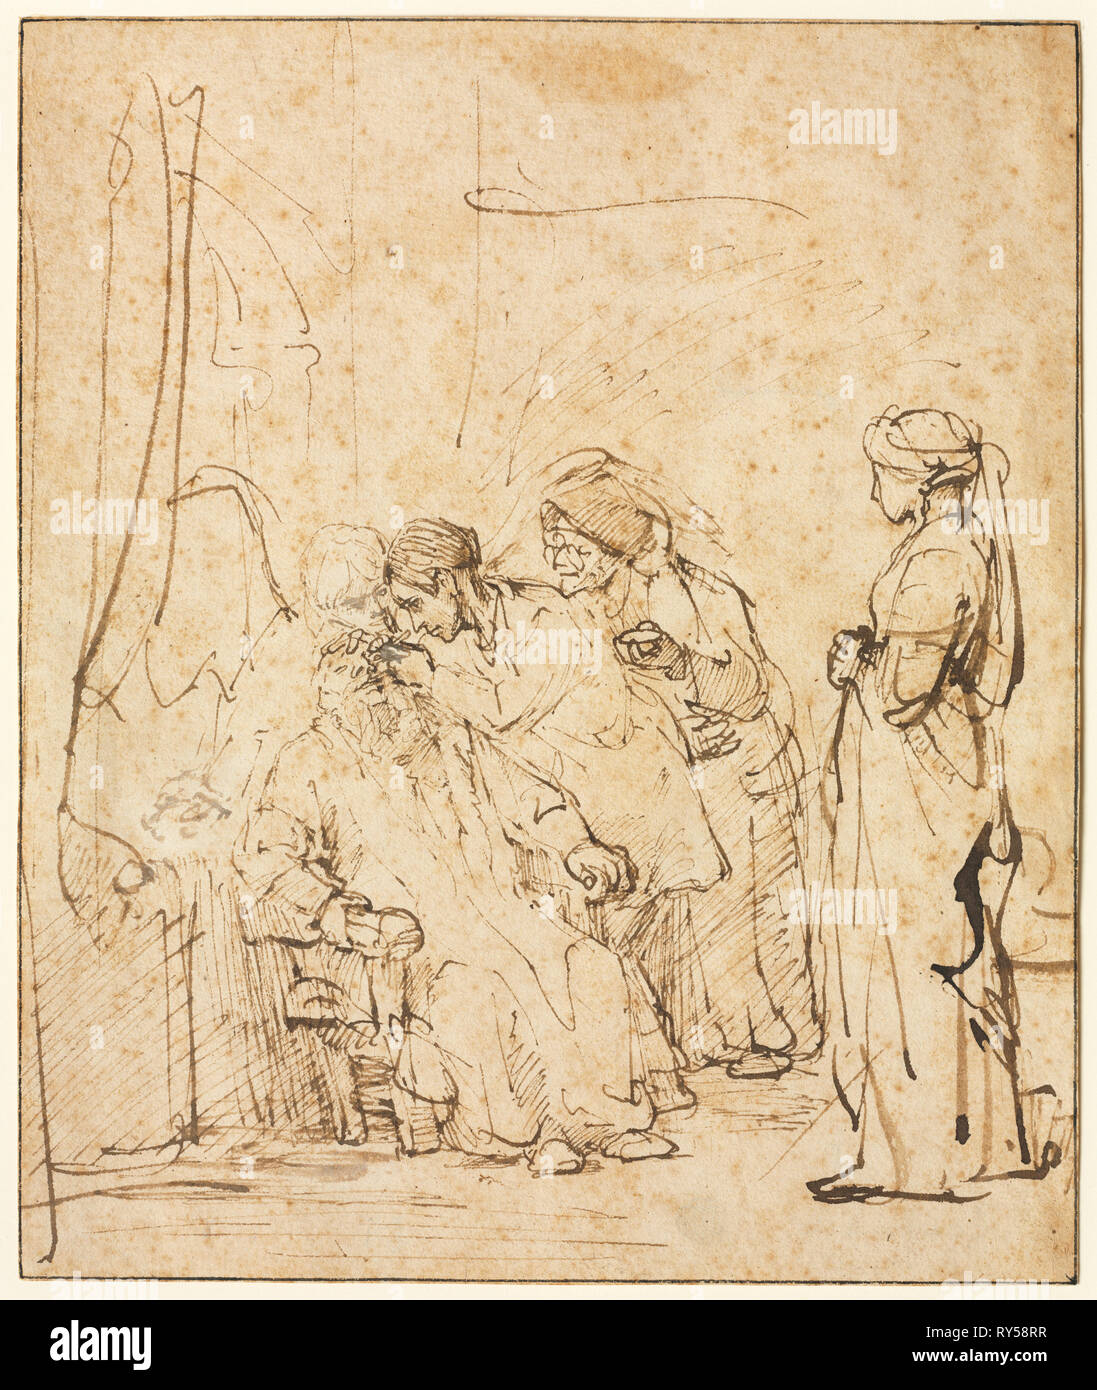 Tobias Healing His Father's Blindness, c. 1640-1645. Rembrandt van Rijn (Dutch, 1606-1669). Pen and brown ink, touched with white gouache, framing lines in brown ink; sheet: 21.1 x 17.7 cm (8 5/16 x 6 15/16 in - Stock Image